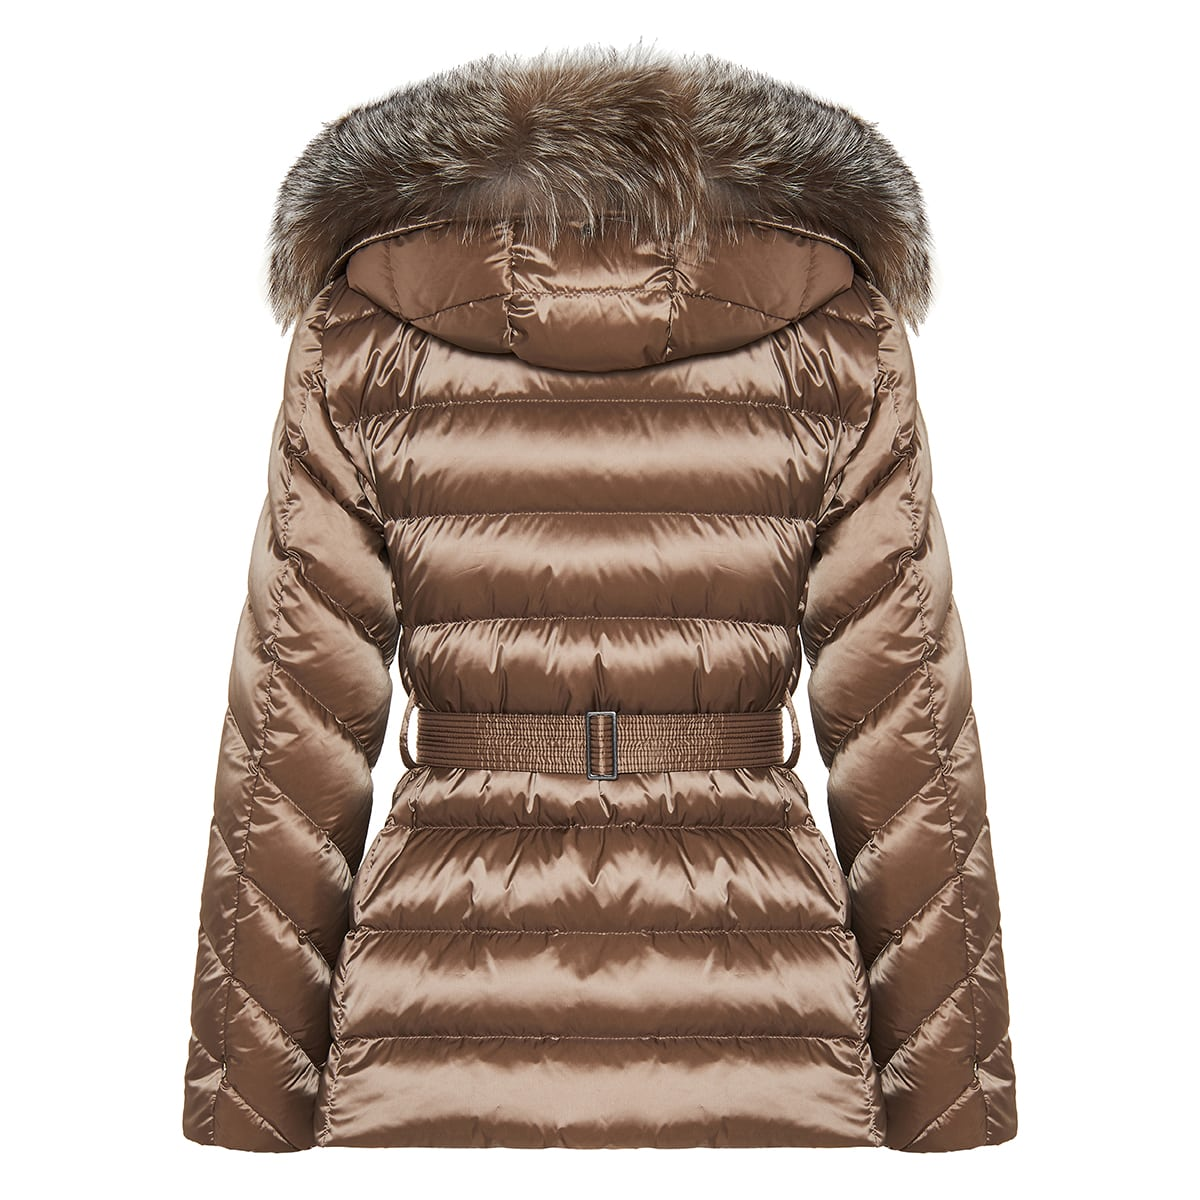 Cupidone quilted puffer jacket